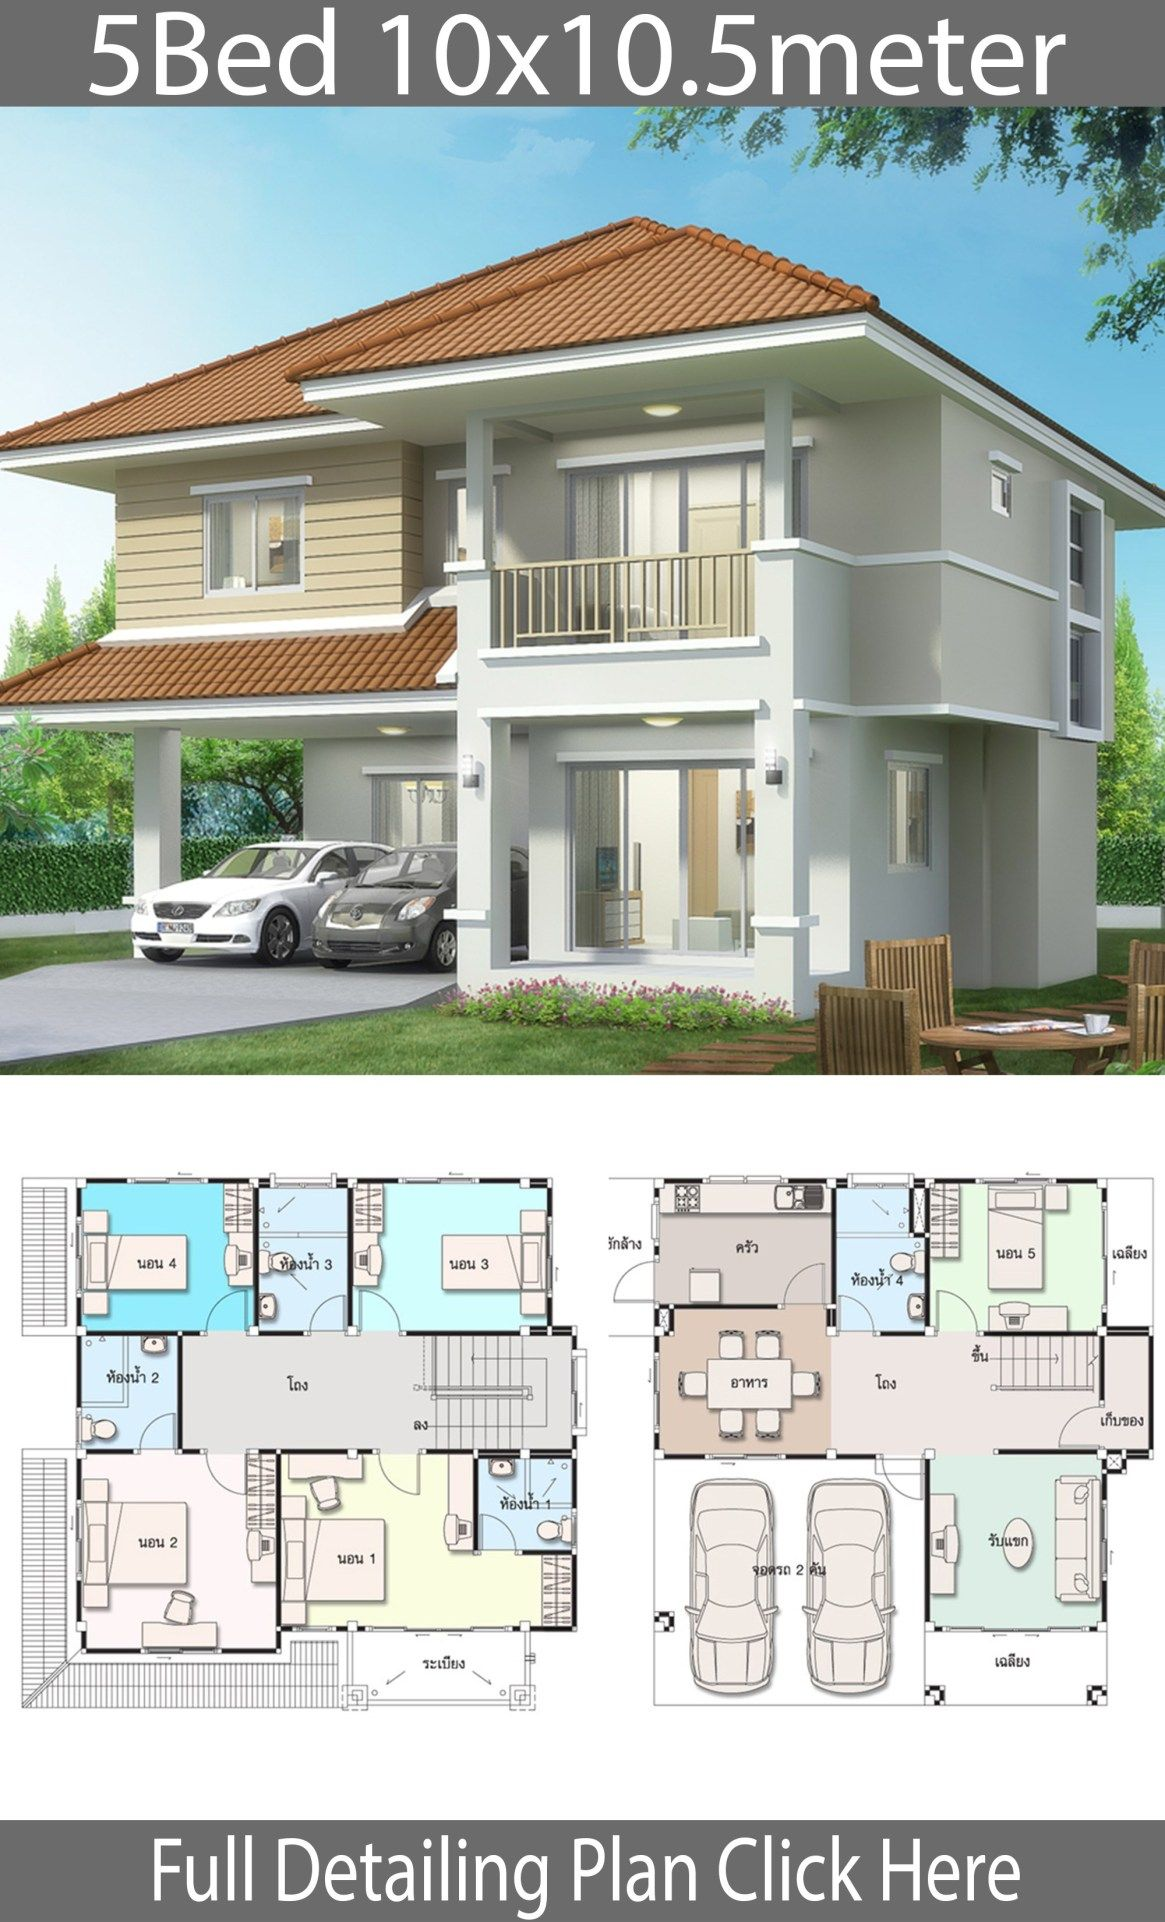 House Design Plan 10x10 5m With 5 Bedrooms Home Design With Plansearch Duplex House Design House Construction Plan Home Design Floor Plans